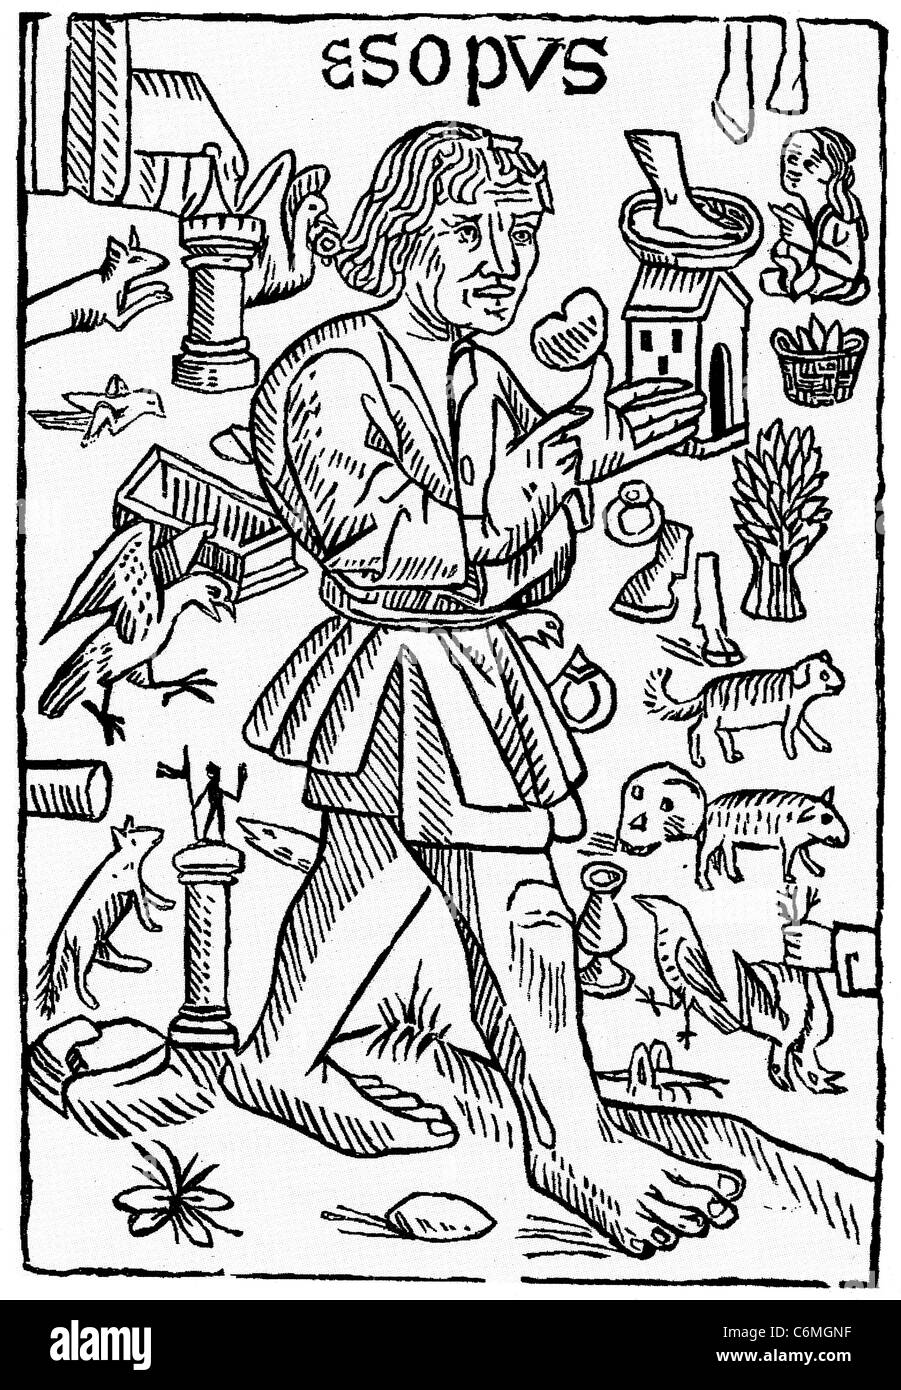 AESOP'S FABLES Frontespiece to the William Caxton's 1484 English translation from a French version - Stock Image